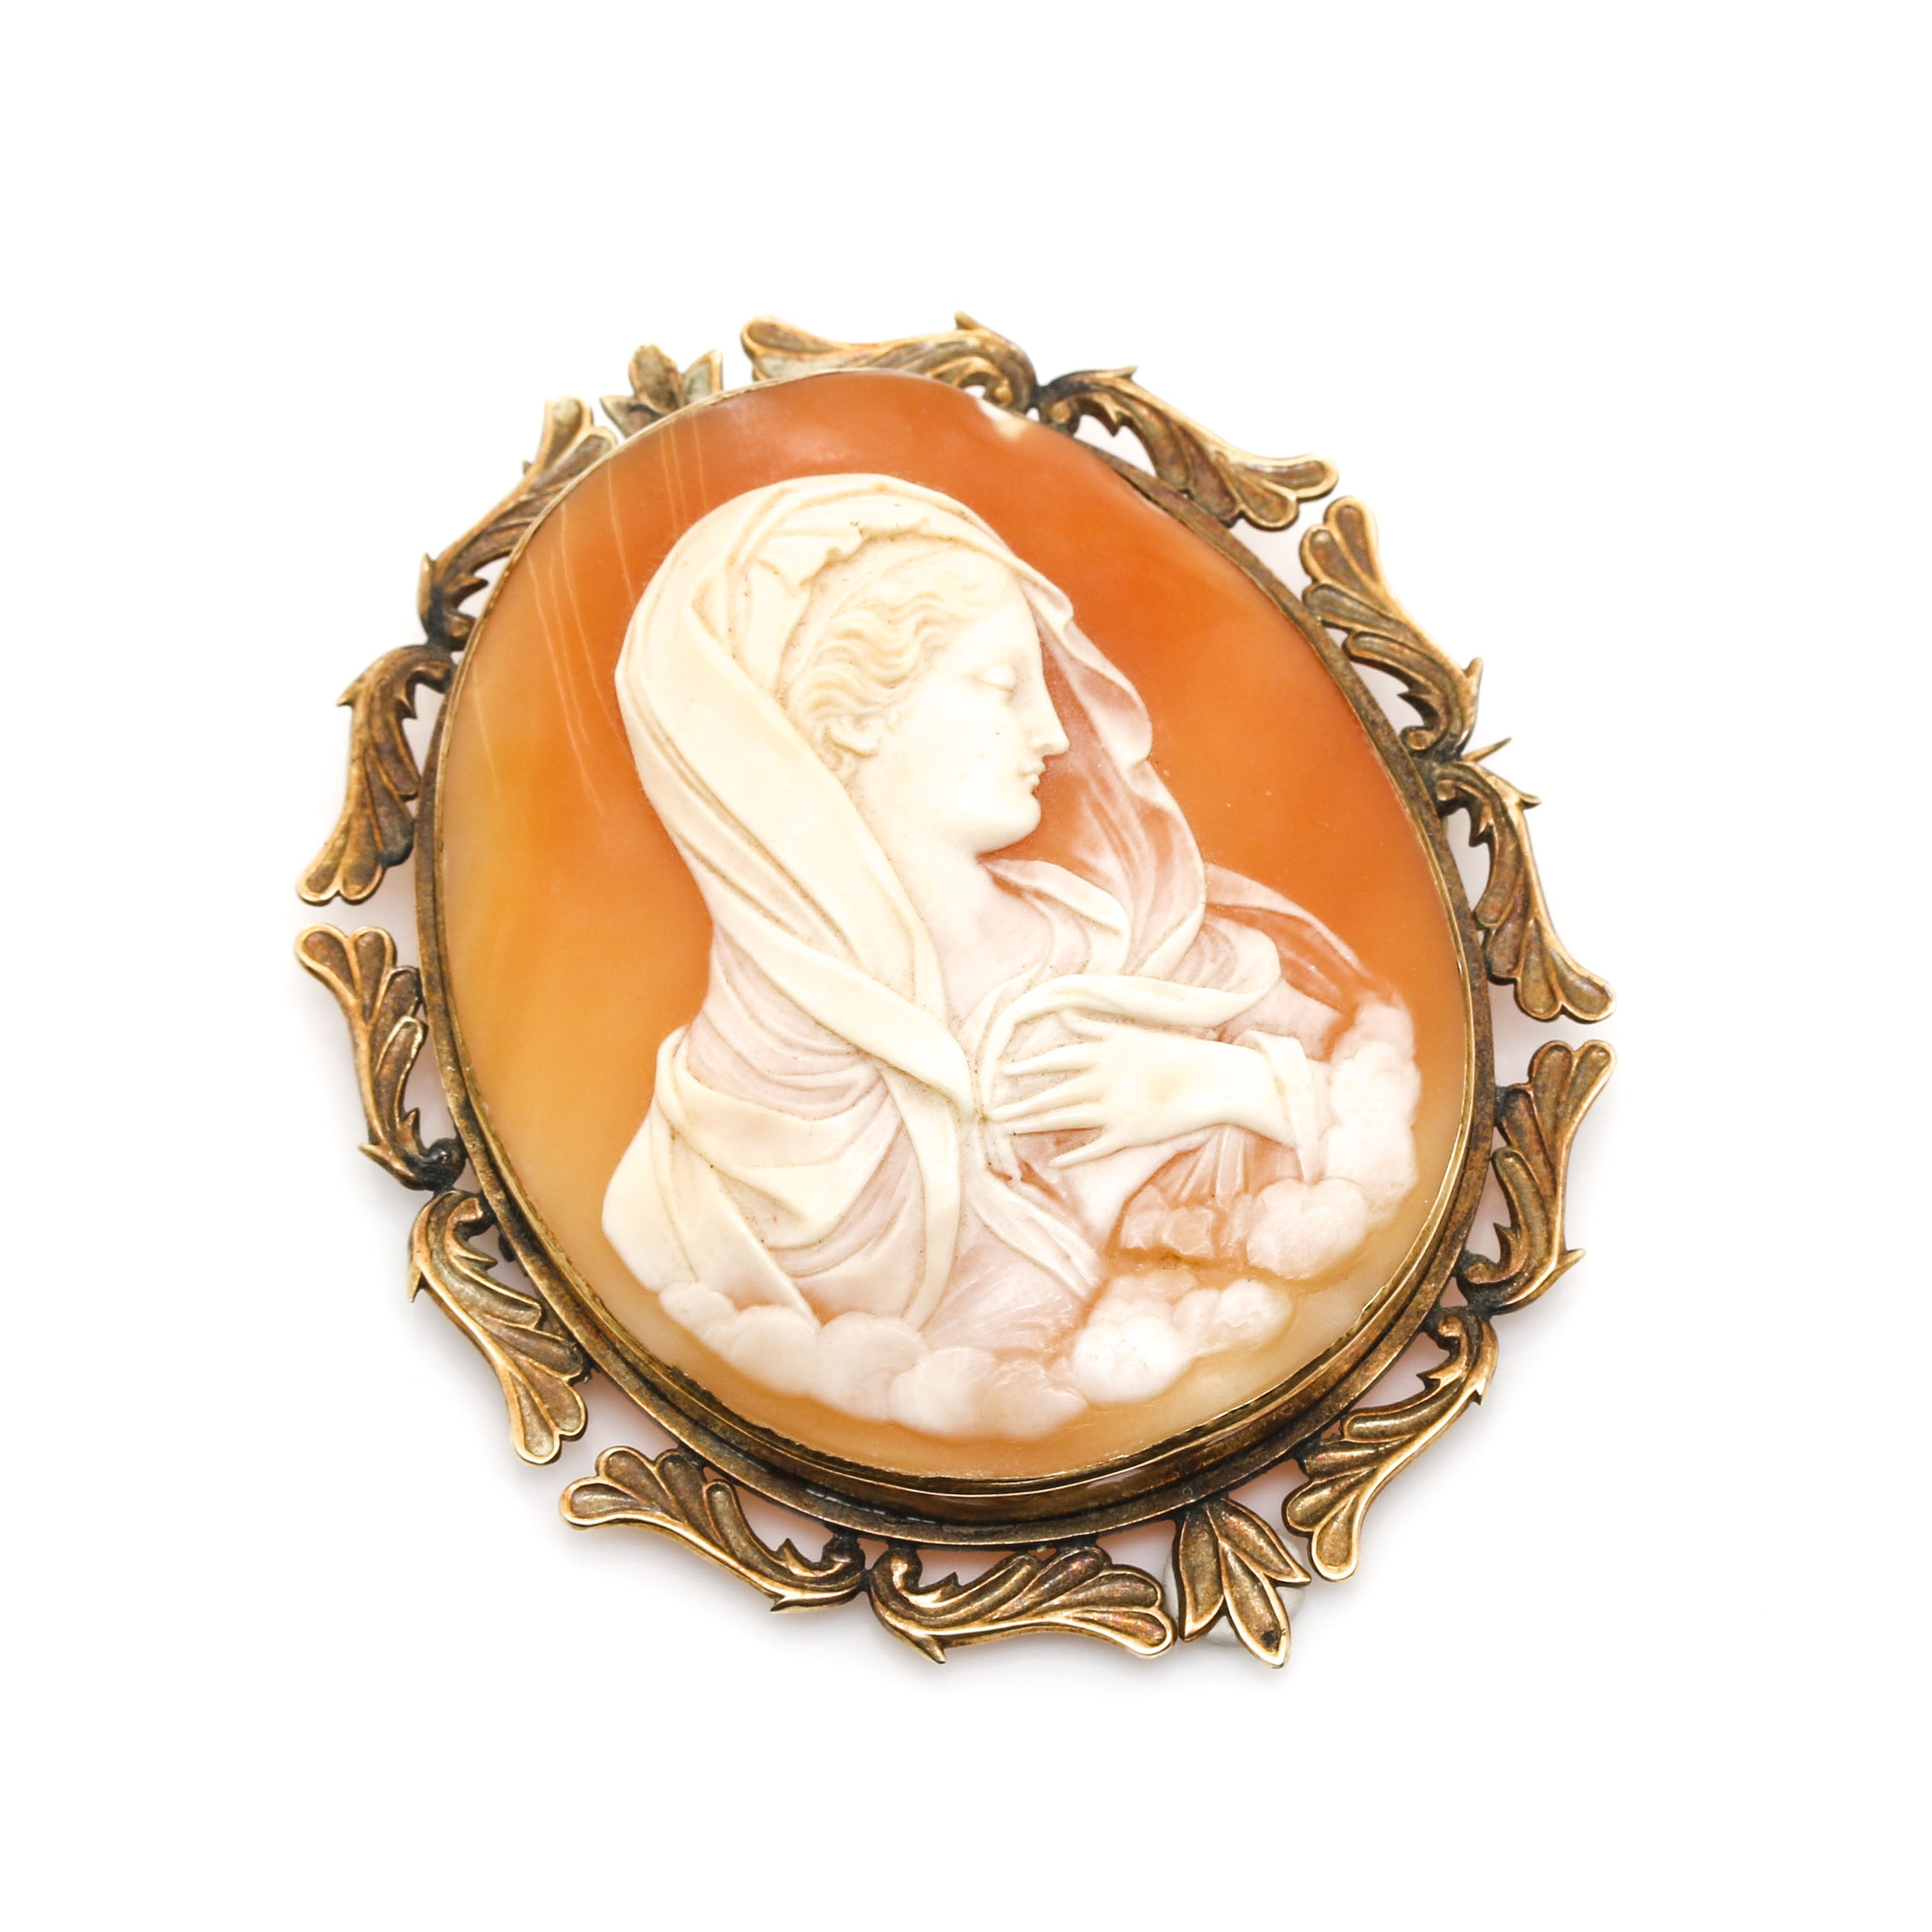 Victorian 14K Yellow Gold and Rolled Gold Shell Cameo Brooch